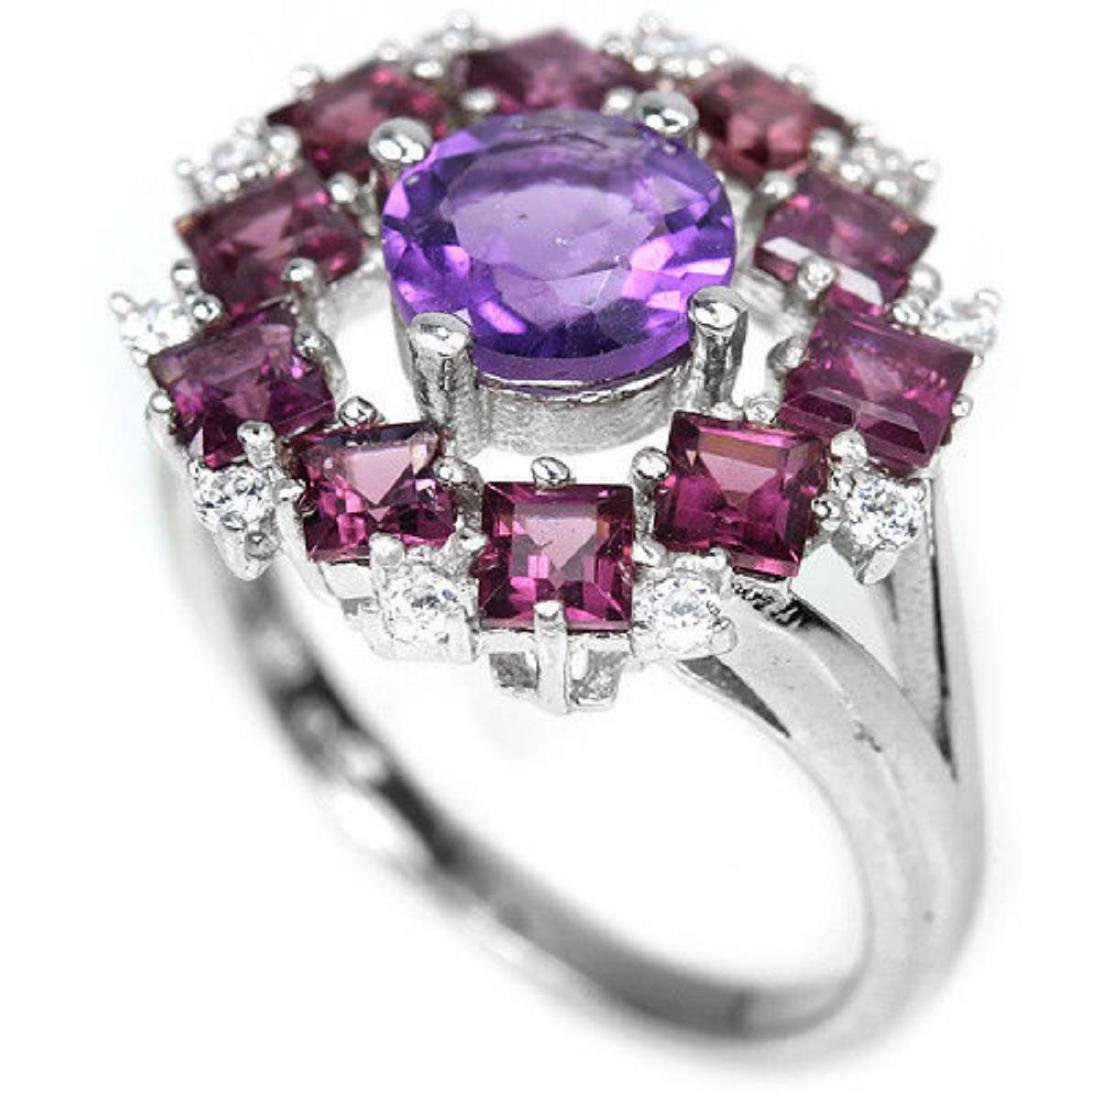 NATURAL AMETHYST, RHODOLITE GARNET Ring - 2